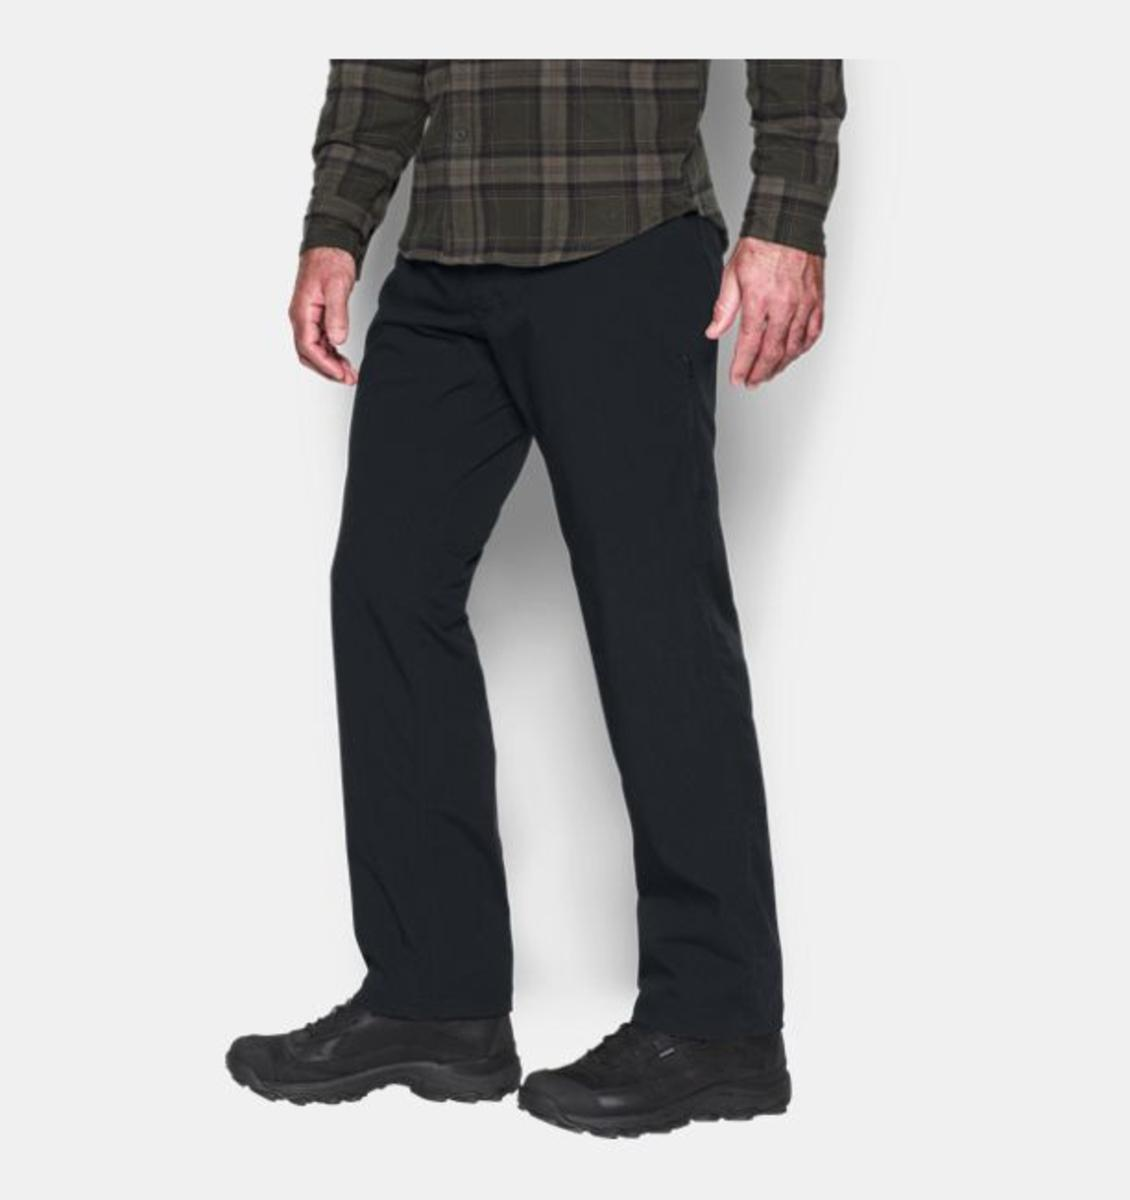 Under Armour Coldgear Infrared Snocone Snowboard Pants